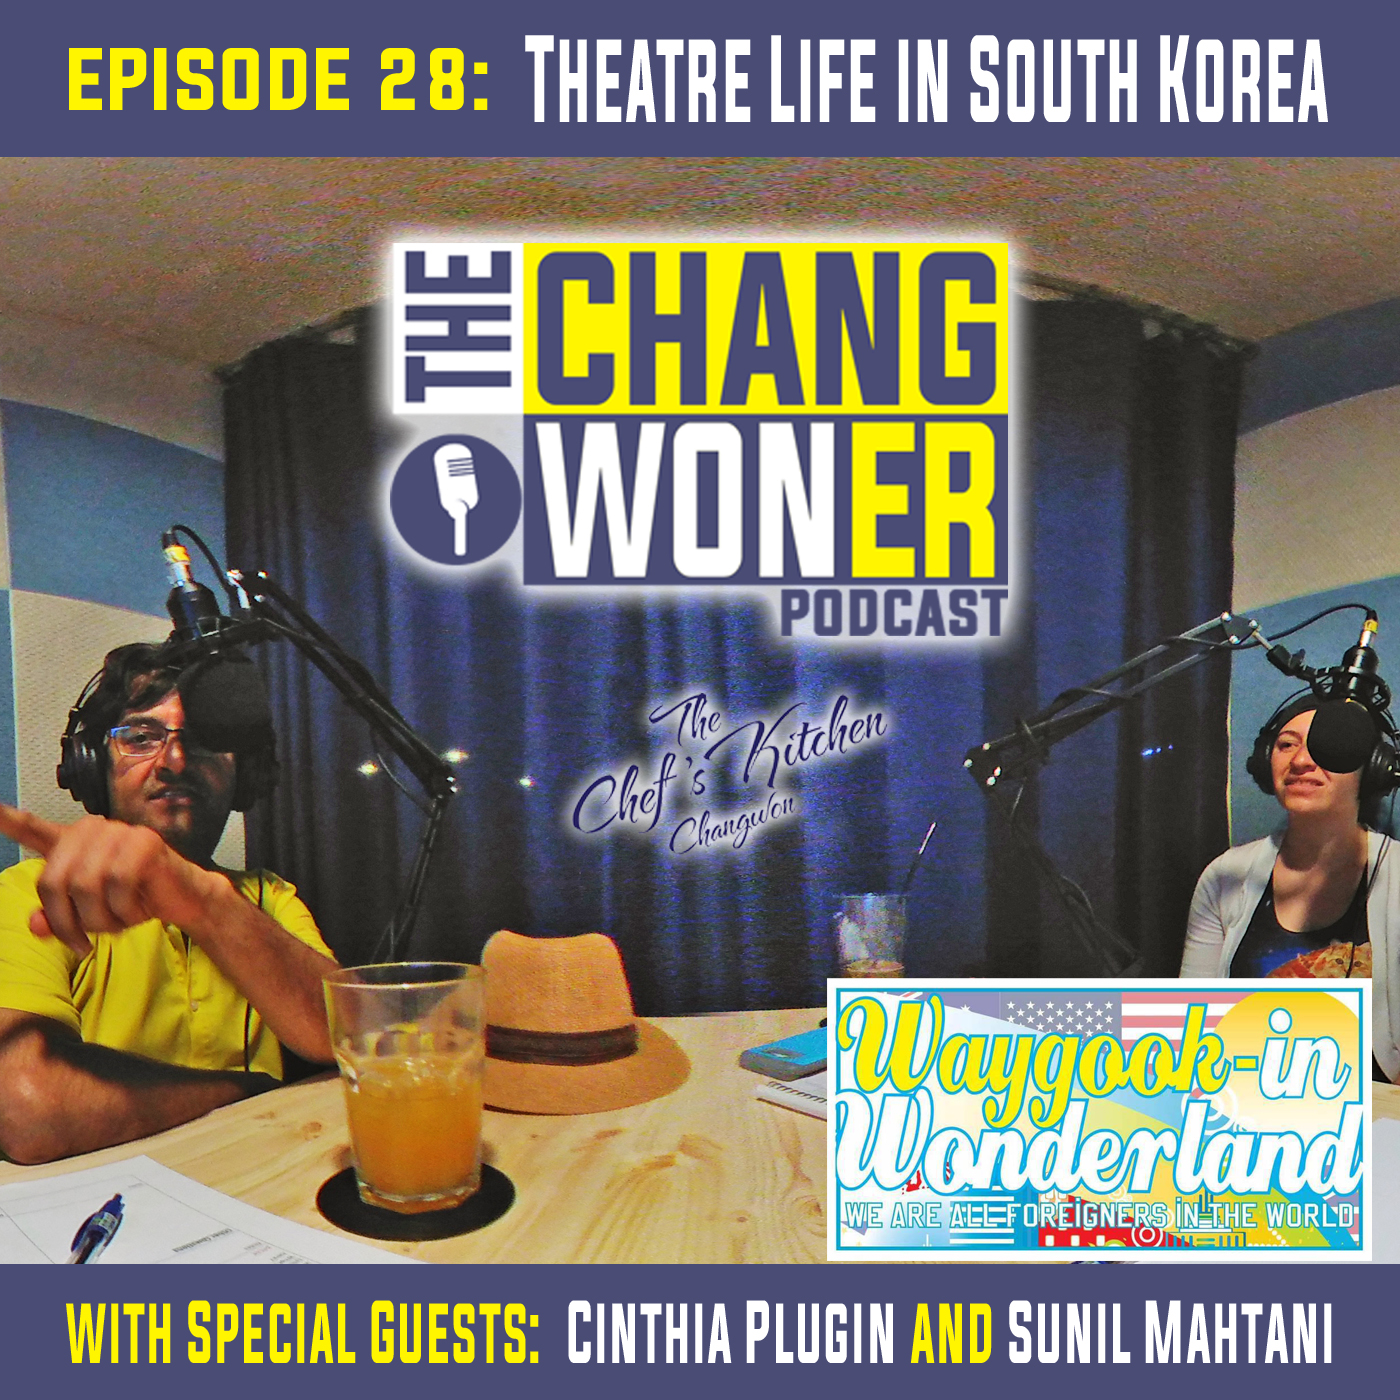 Artwork for Theatre Life, Acting, and Live Plays in South Korea -guests Cinthia Plugin and Sanil Mahtani (Ep 28)